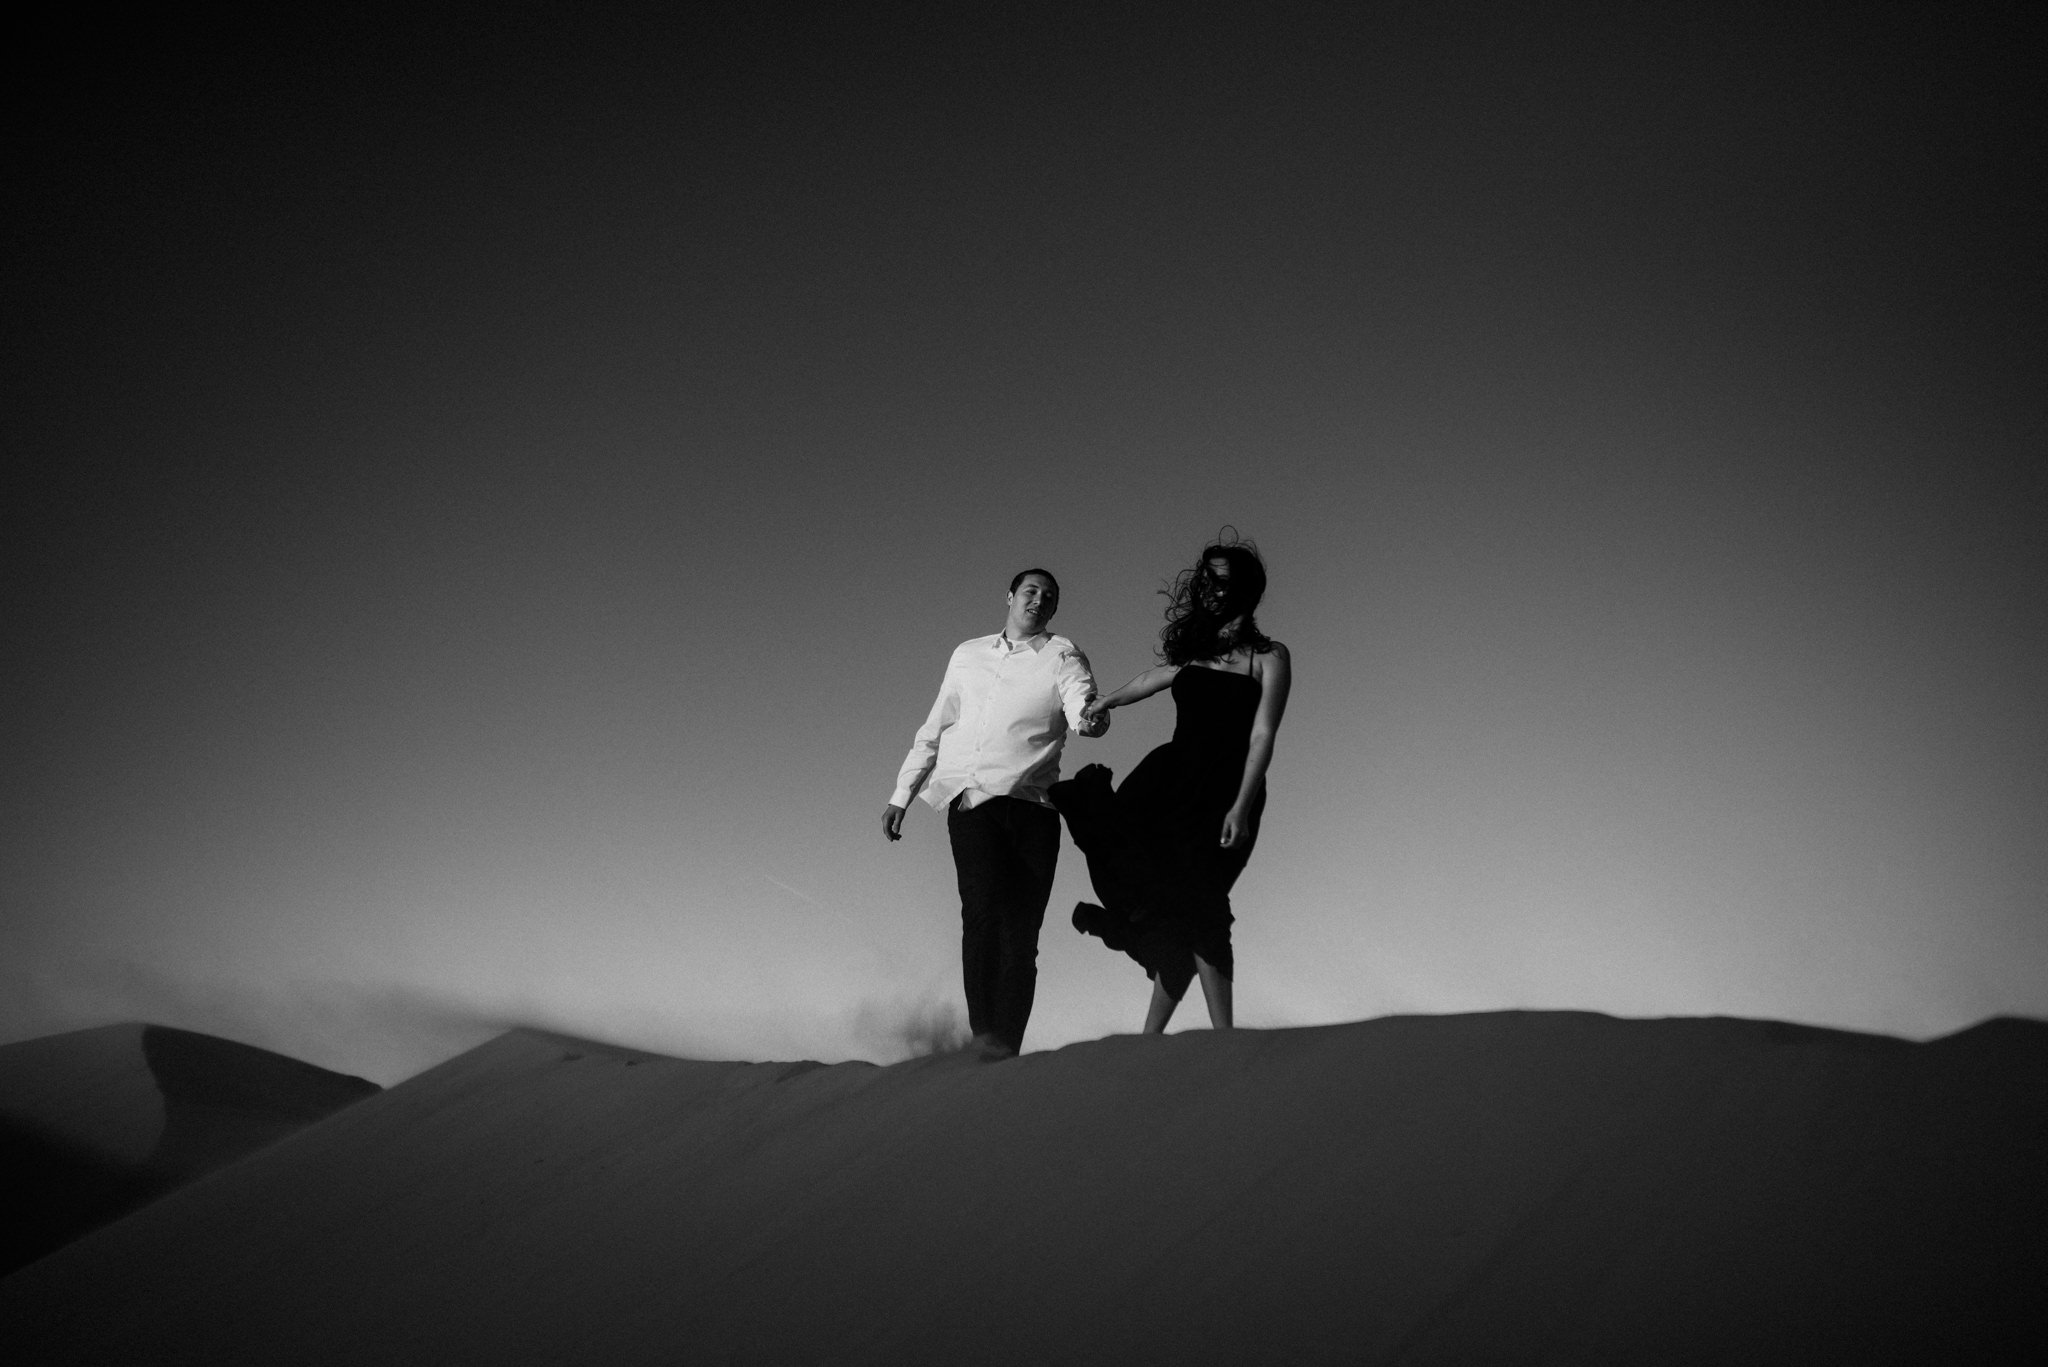 twyla jones photography | couples engagement session sand dunes utah sunset stars-35.jpg